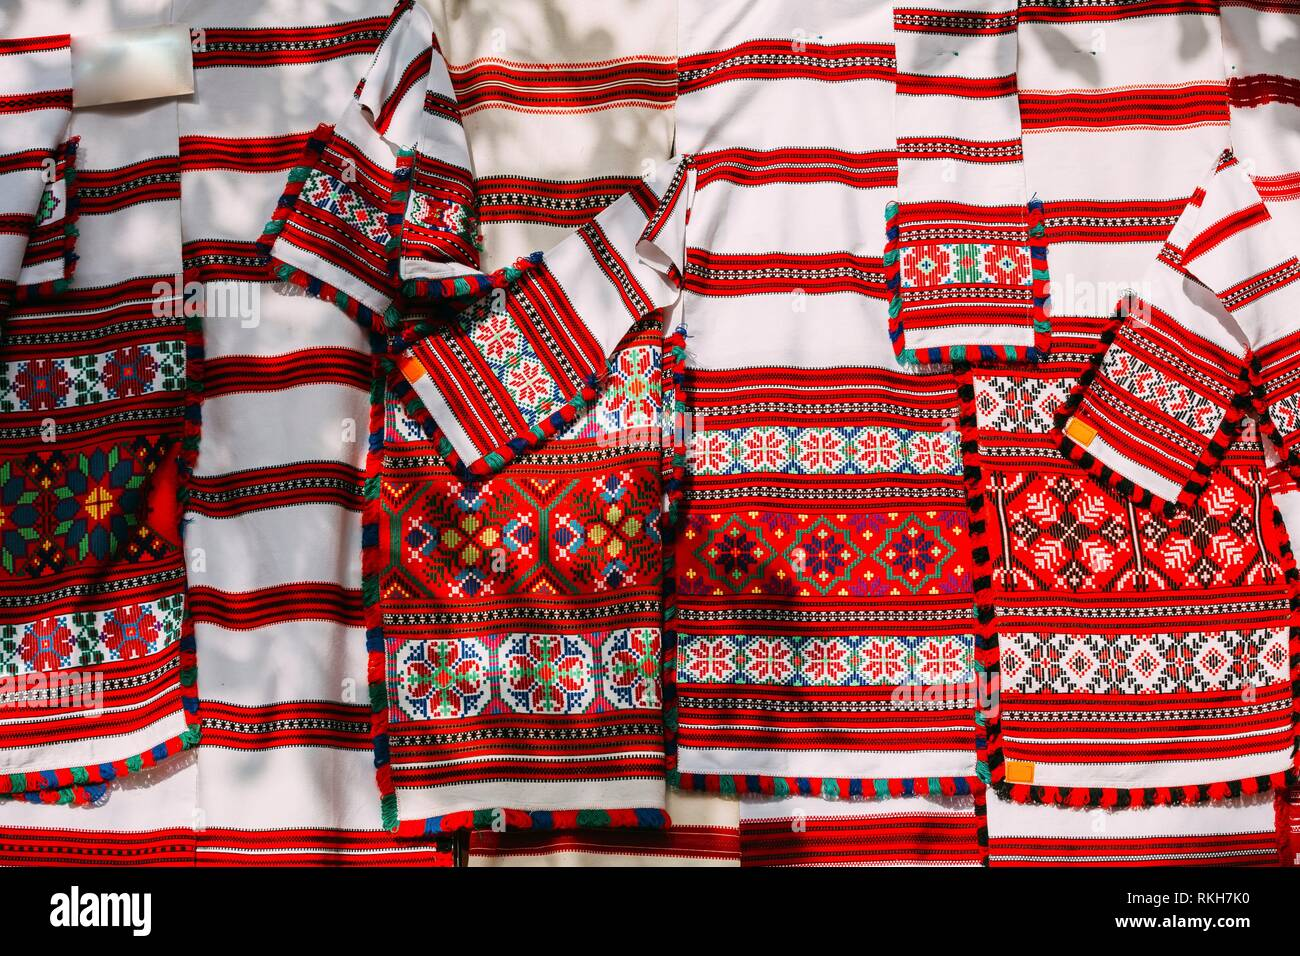 Belorussian ethnic national folks ornament on clothes. Slavic Traditional Pattern Ornament Embroidery. Culture of Belarus. - Stock Image